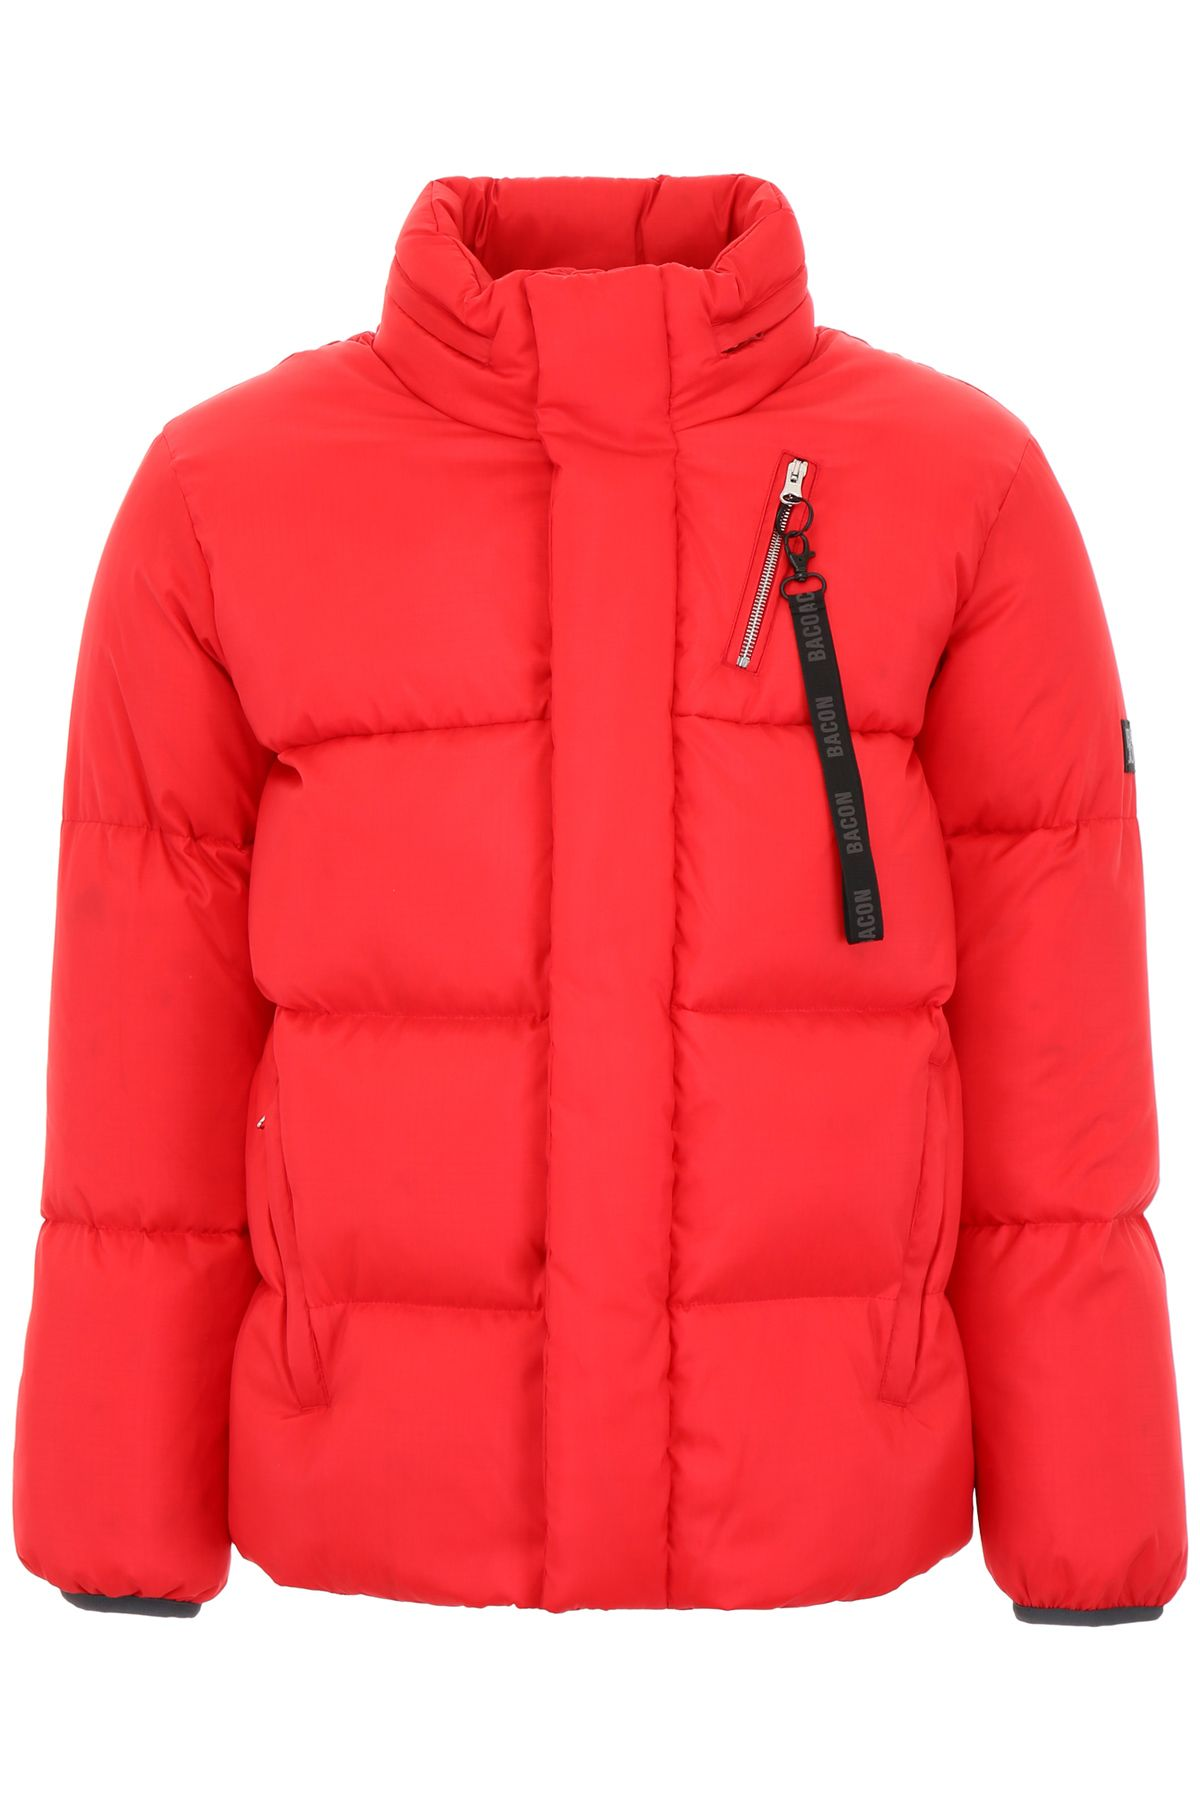 BACON CLOTHING Big Boo Puffer Jacket in Red